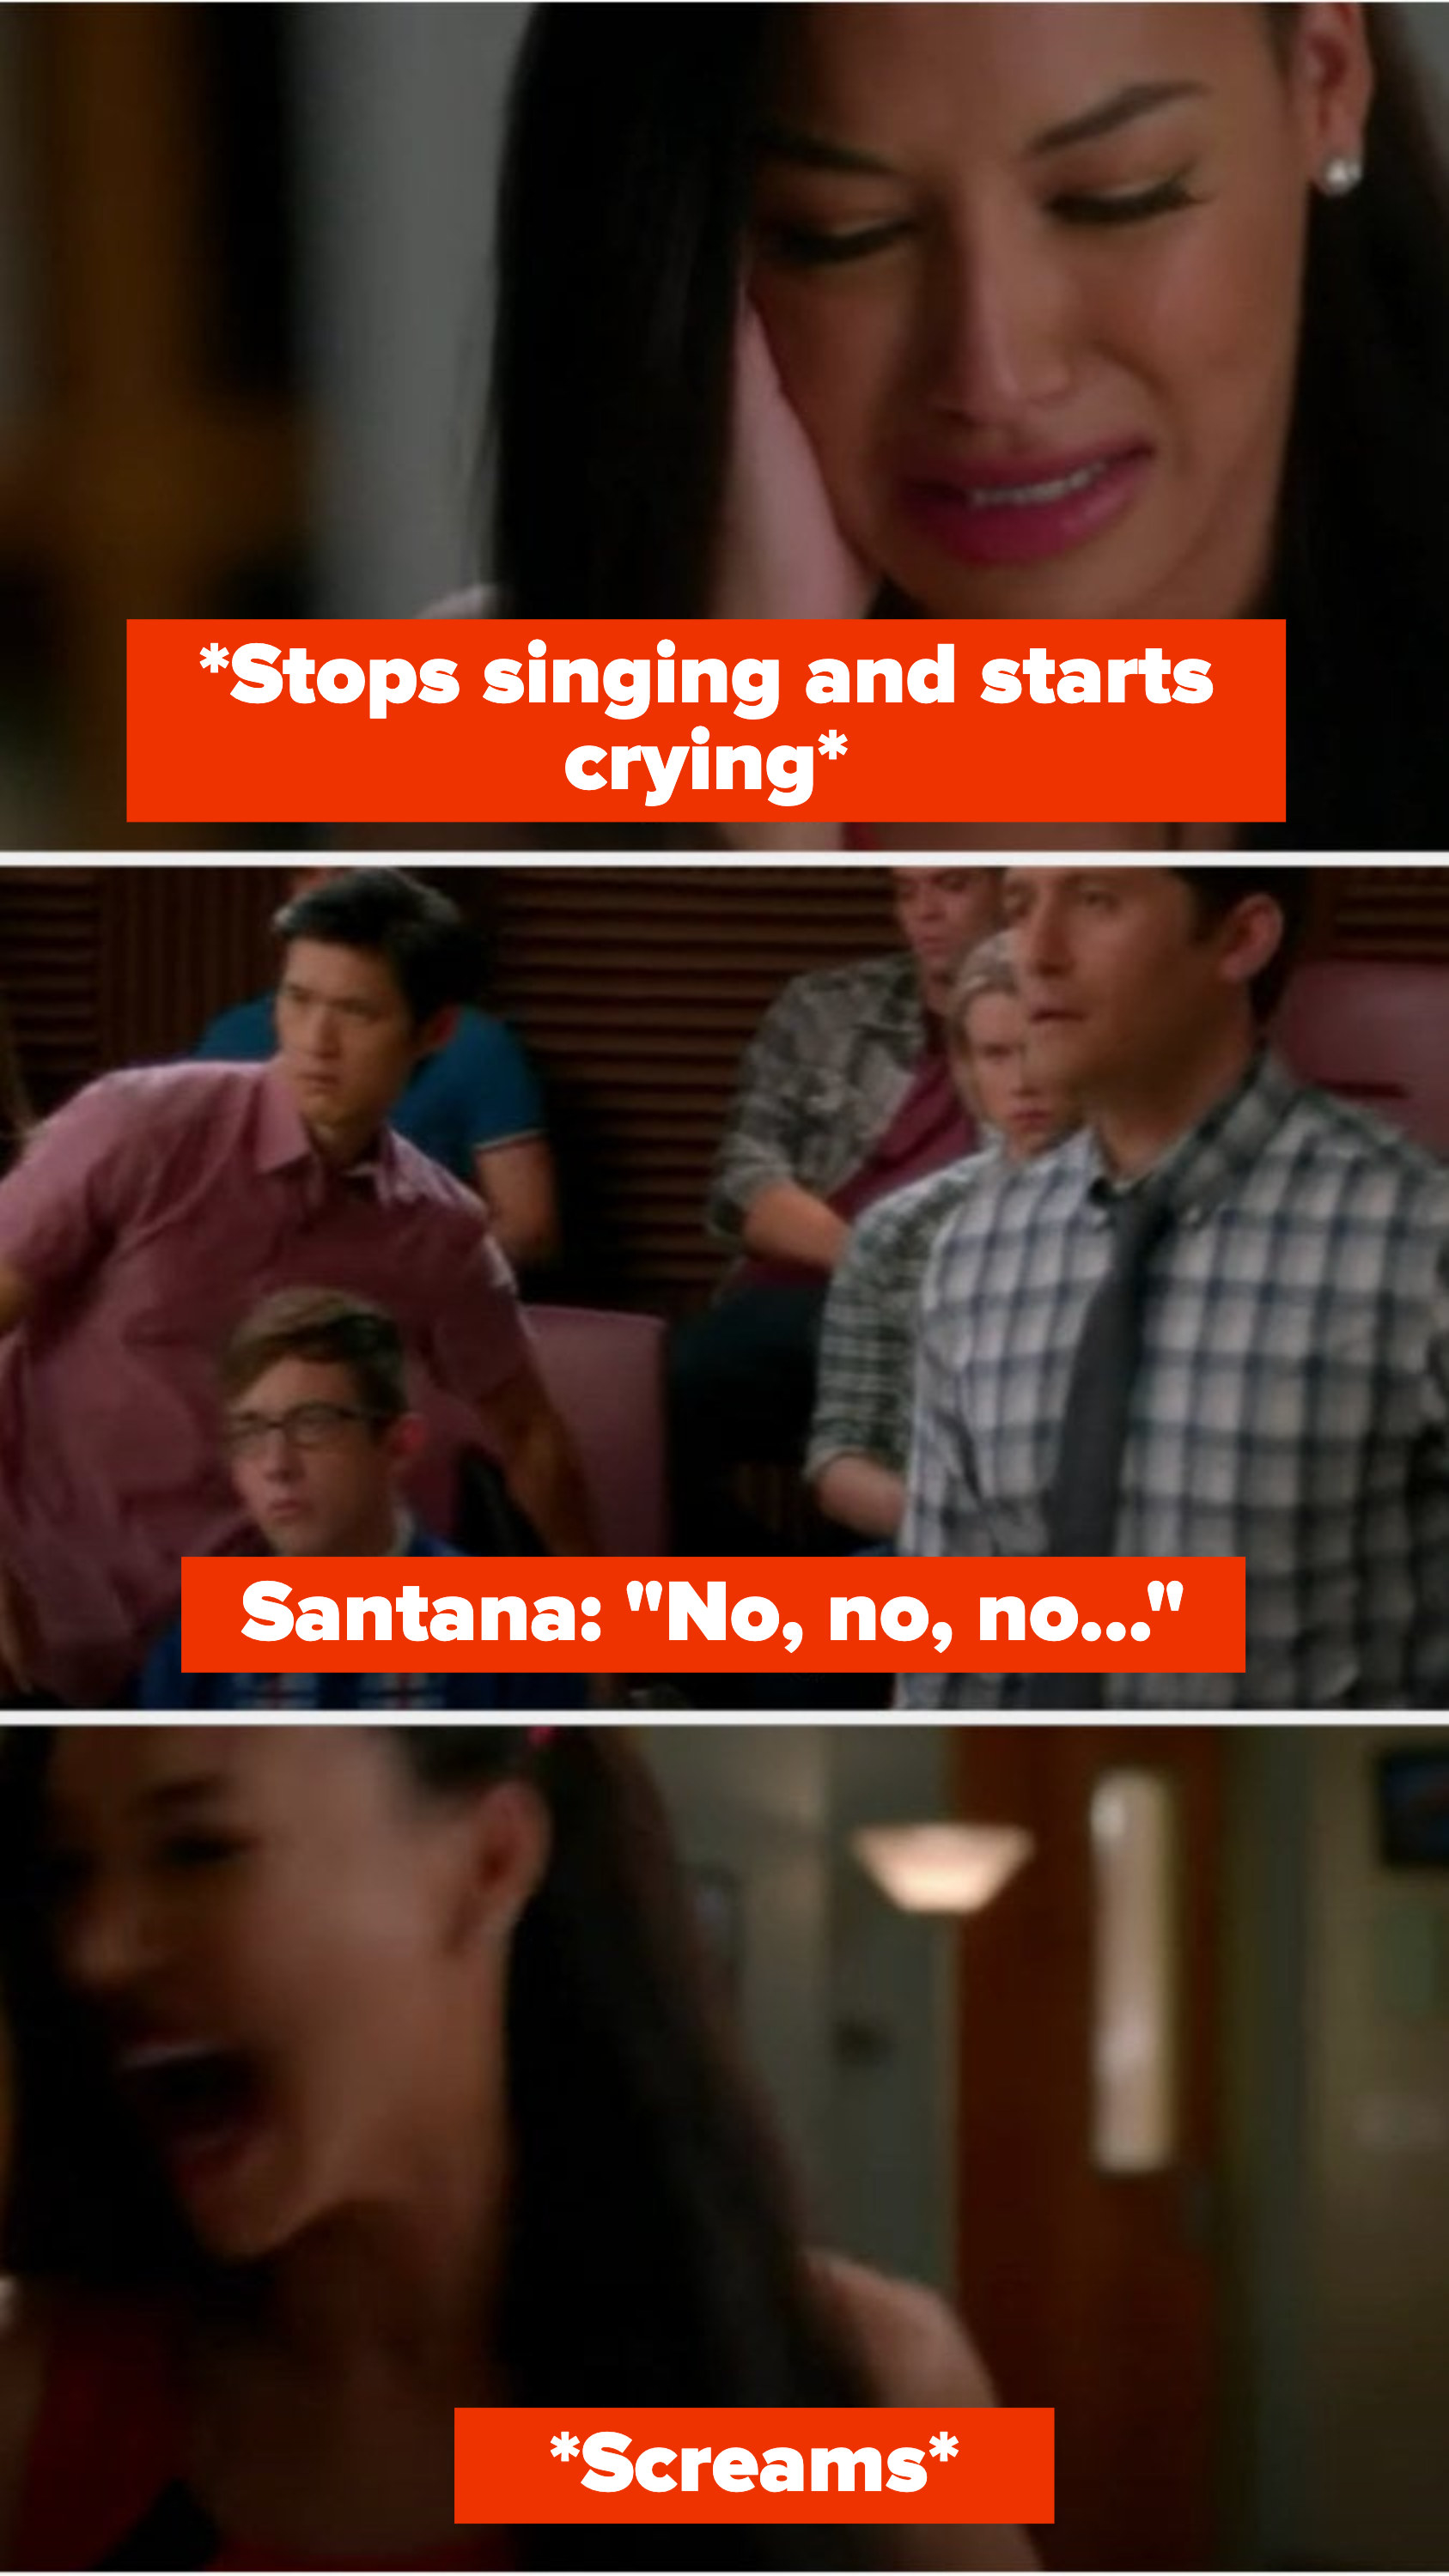 """Santana starts to cry while singing, then says """"No no no"""" as Mike and Mr. Shue stand to comfort her, but then she screams and runs away"""